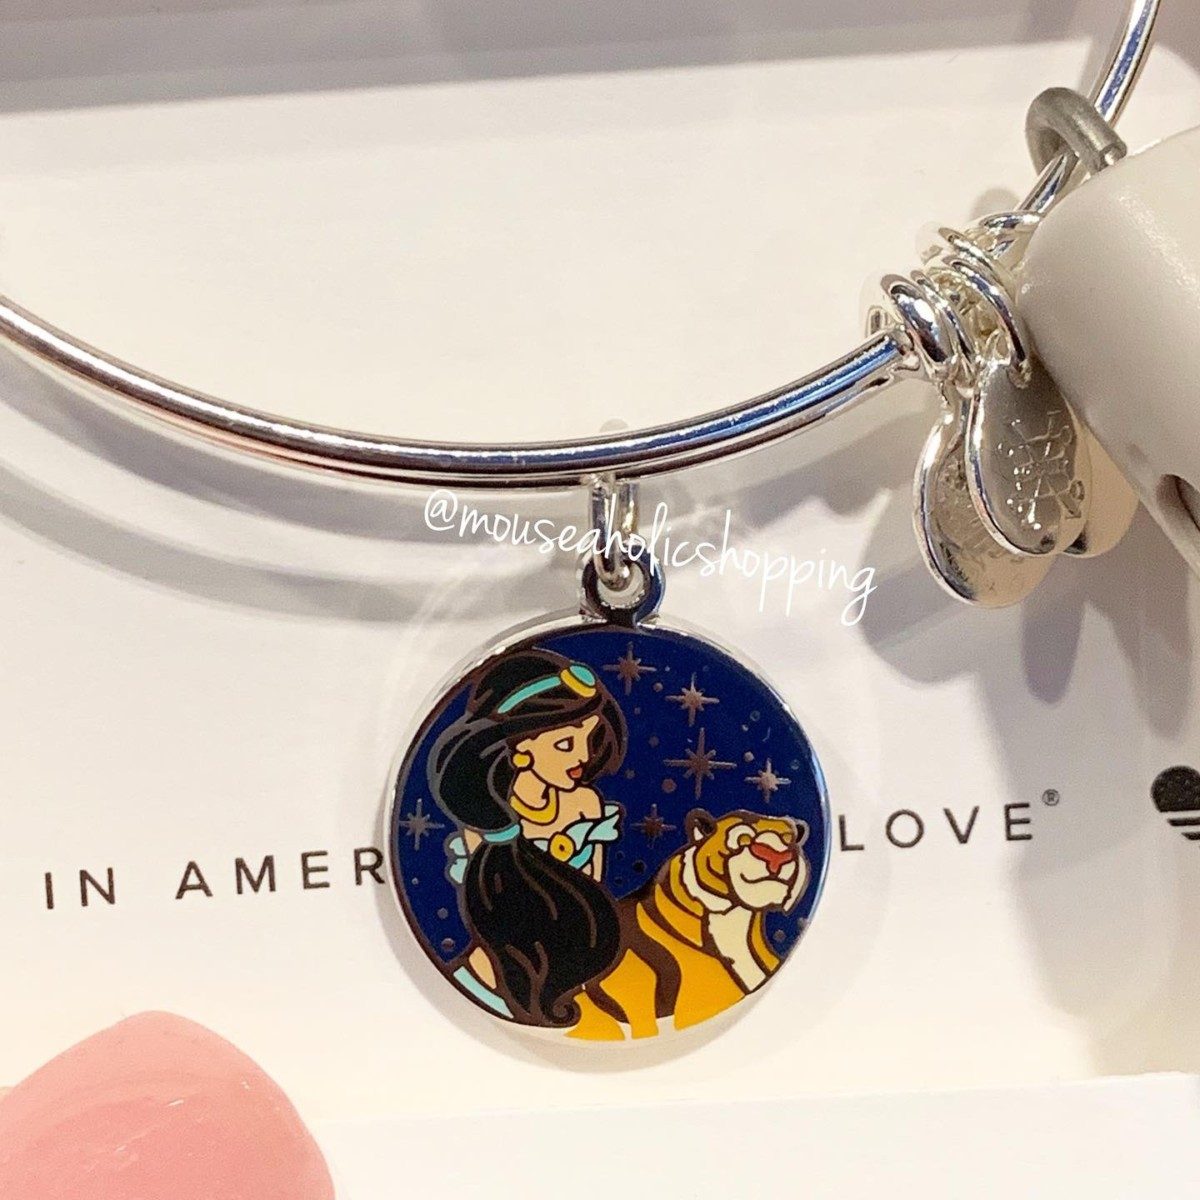 New Aladdin Inspired Alex and Ani Bracelets Are Shining, Shimmering Splendid #DisneyStyle 3